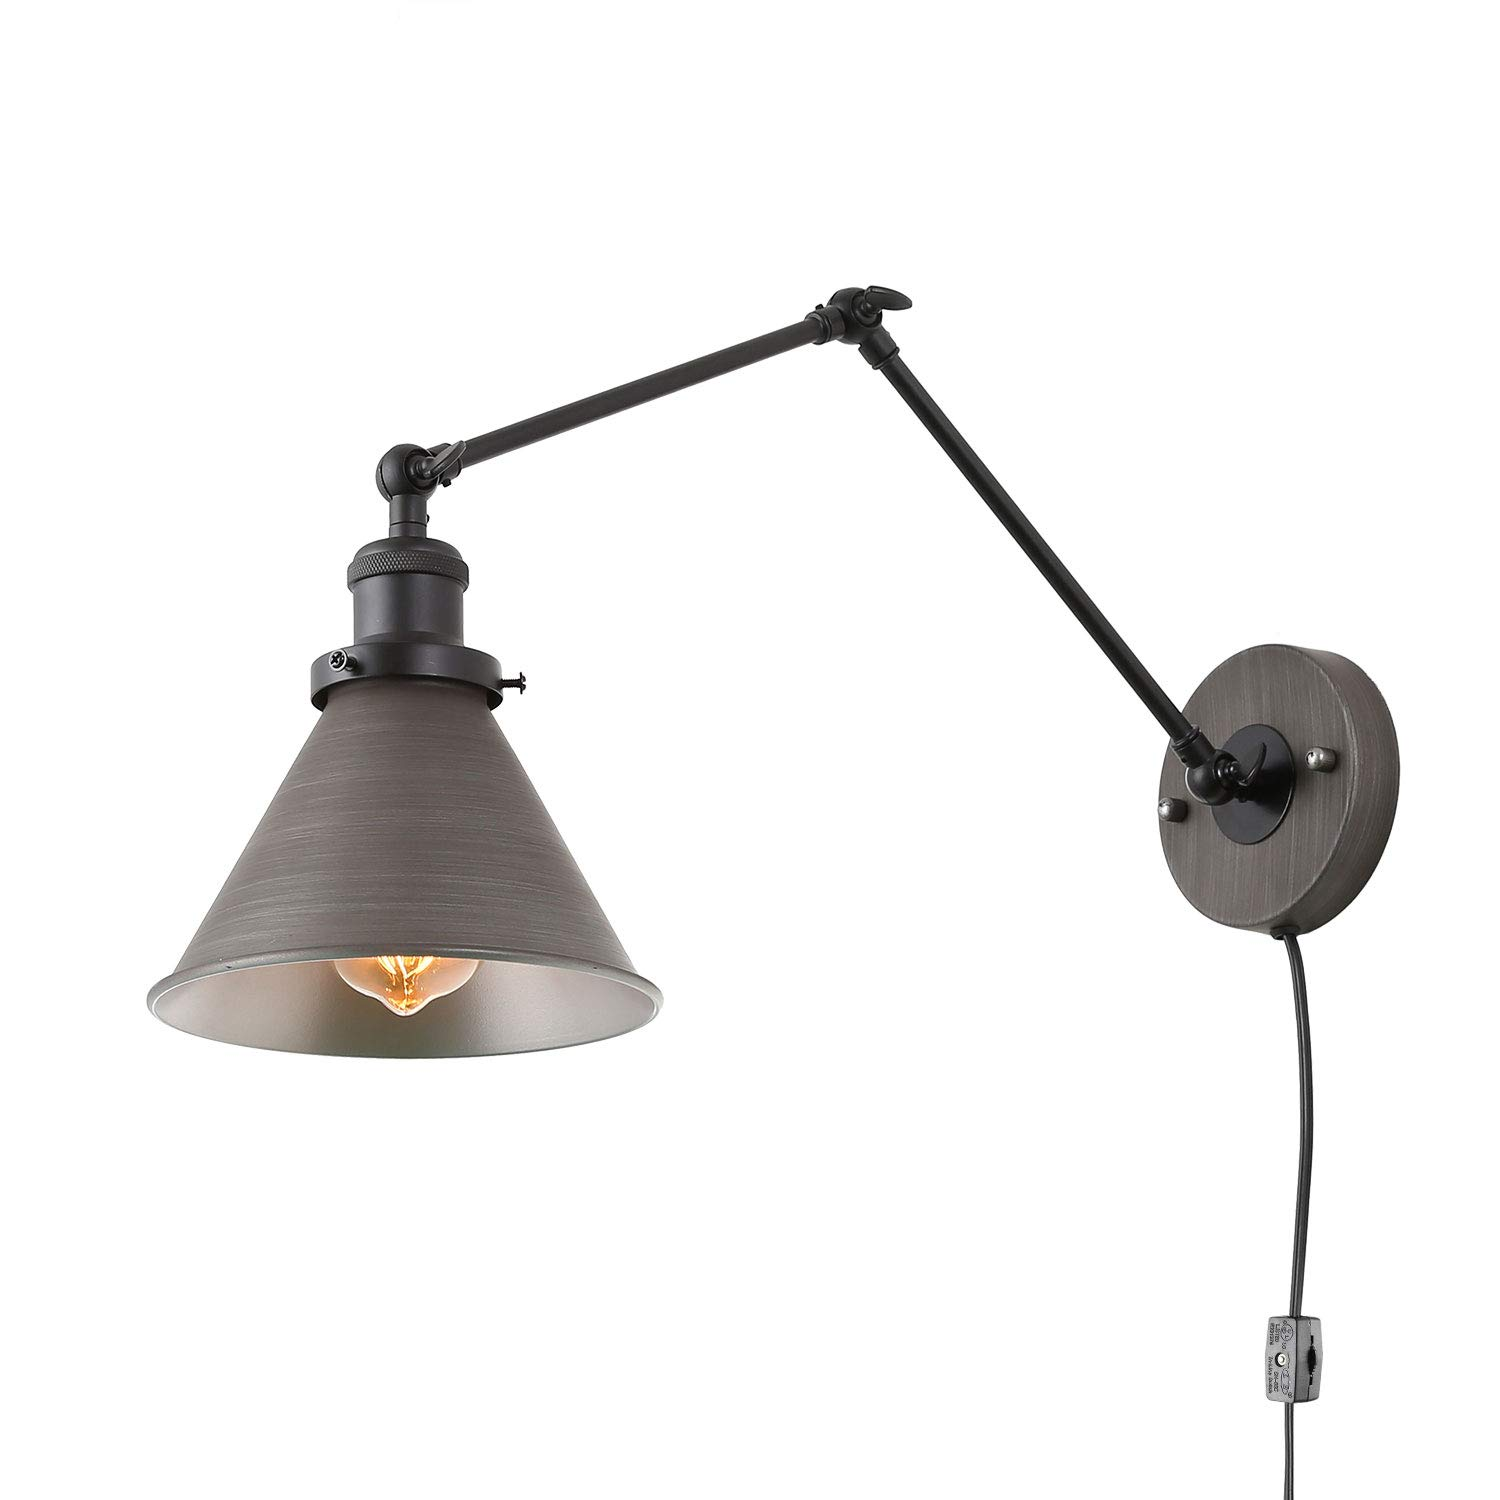 Lnc Swing Arm Wall Lamp Adjustable Wall Sconces Plug In Sconces Wall Lighting